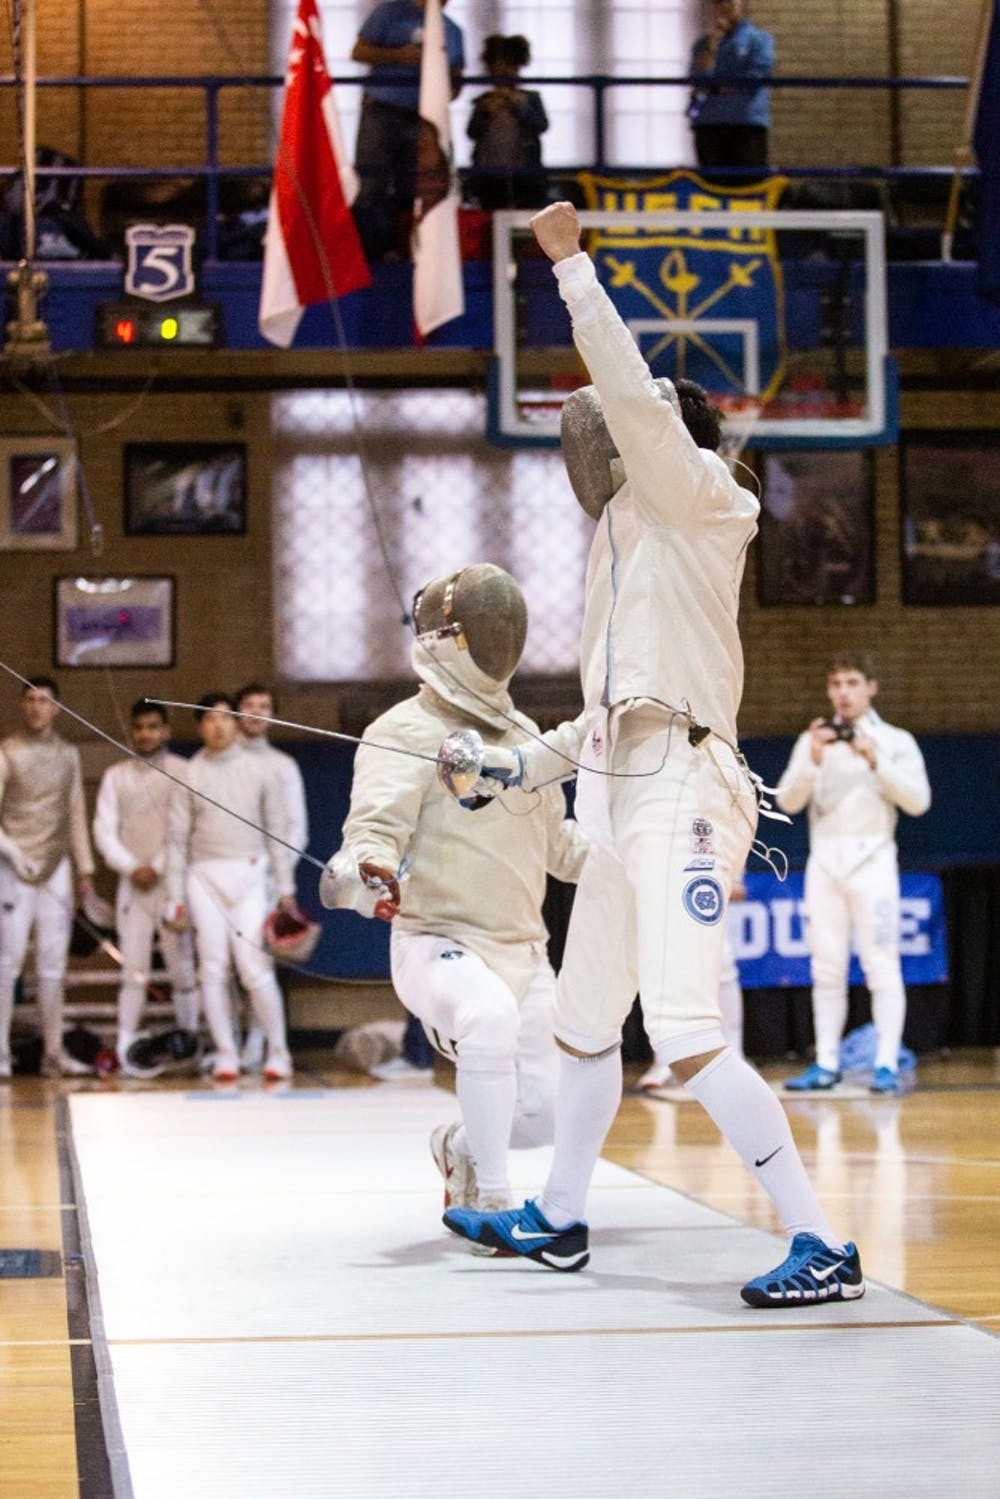 UNC fencing's Beni Rabinowitz finishes third in sabre at NCAA Regionals